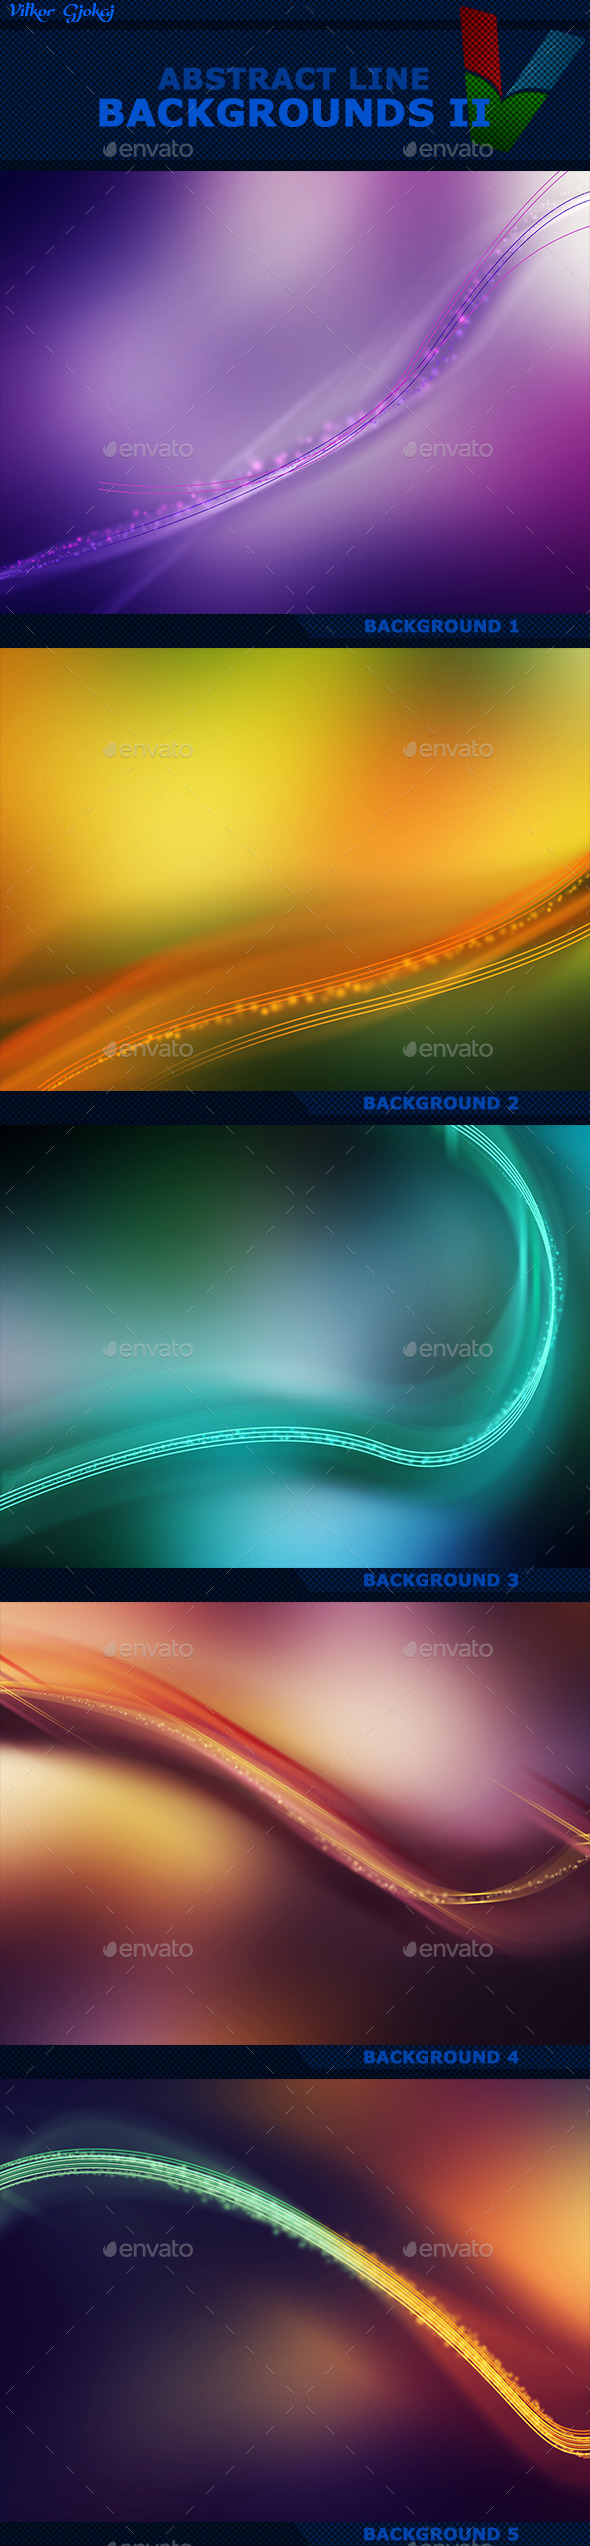 Abstract Line Backgrounds II